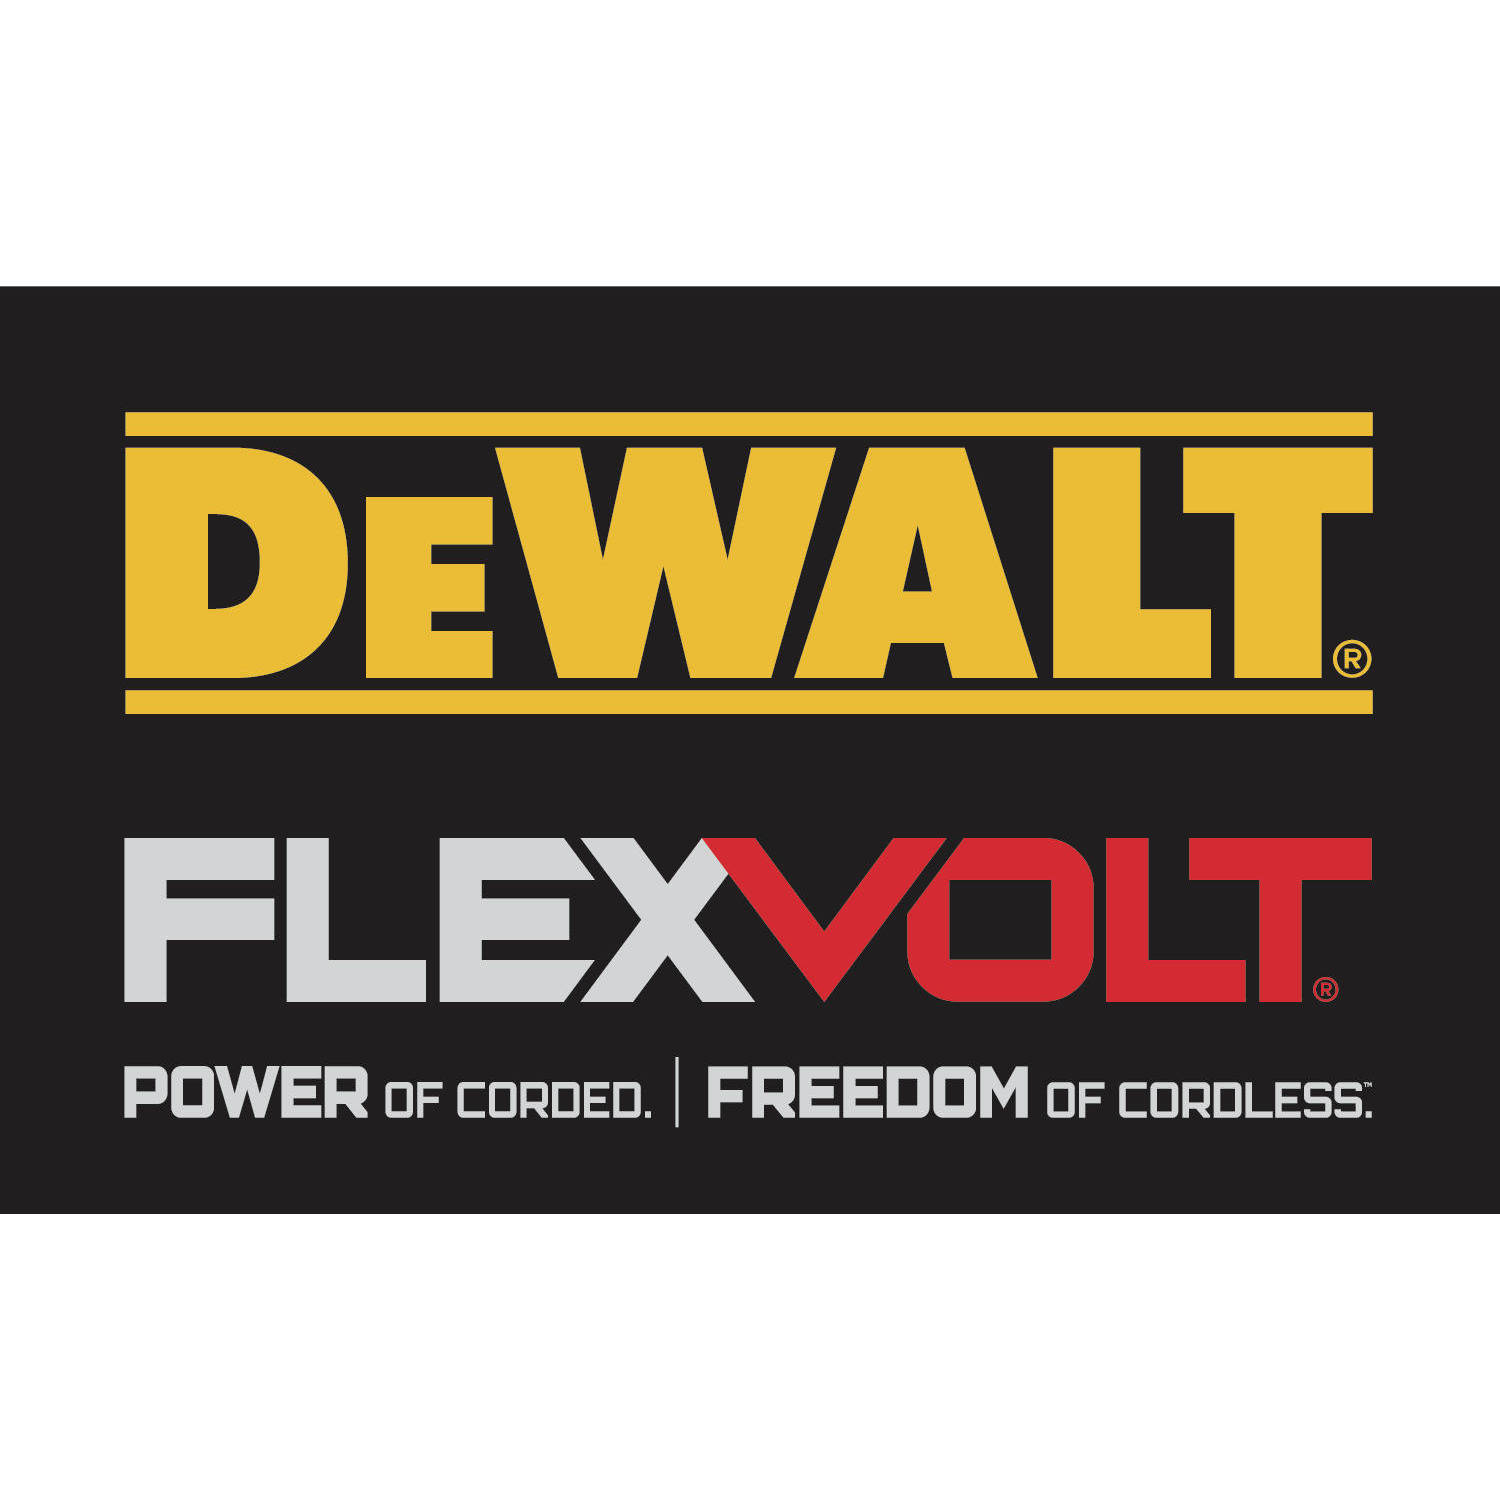 Dewalt FLEXVOLT - Power of Corded - Freedom of Cordless